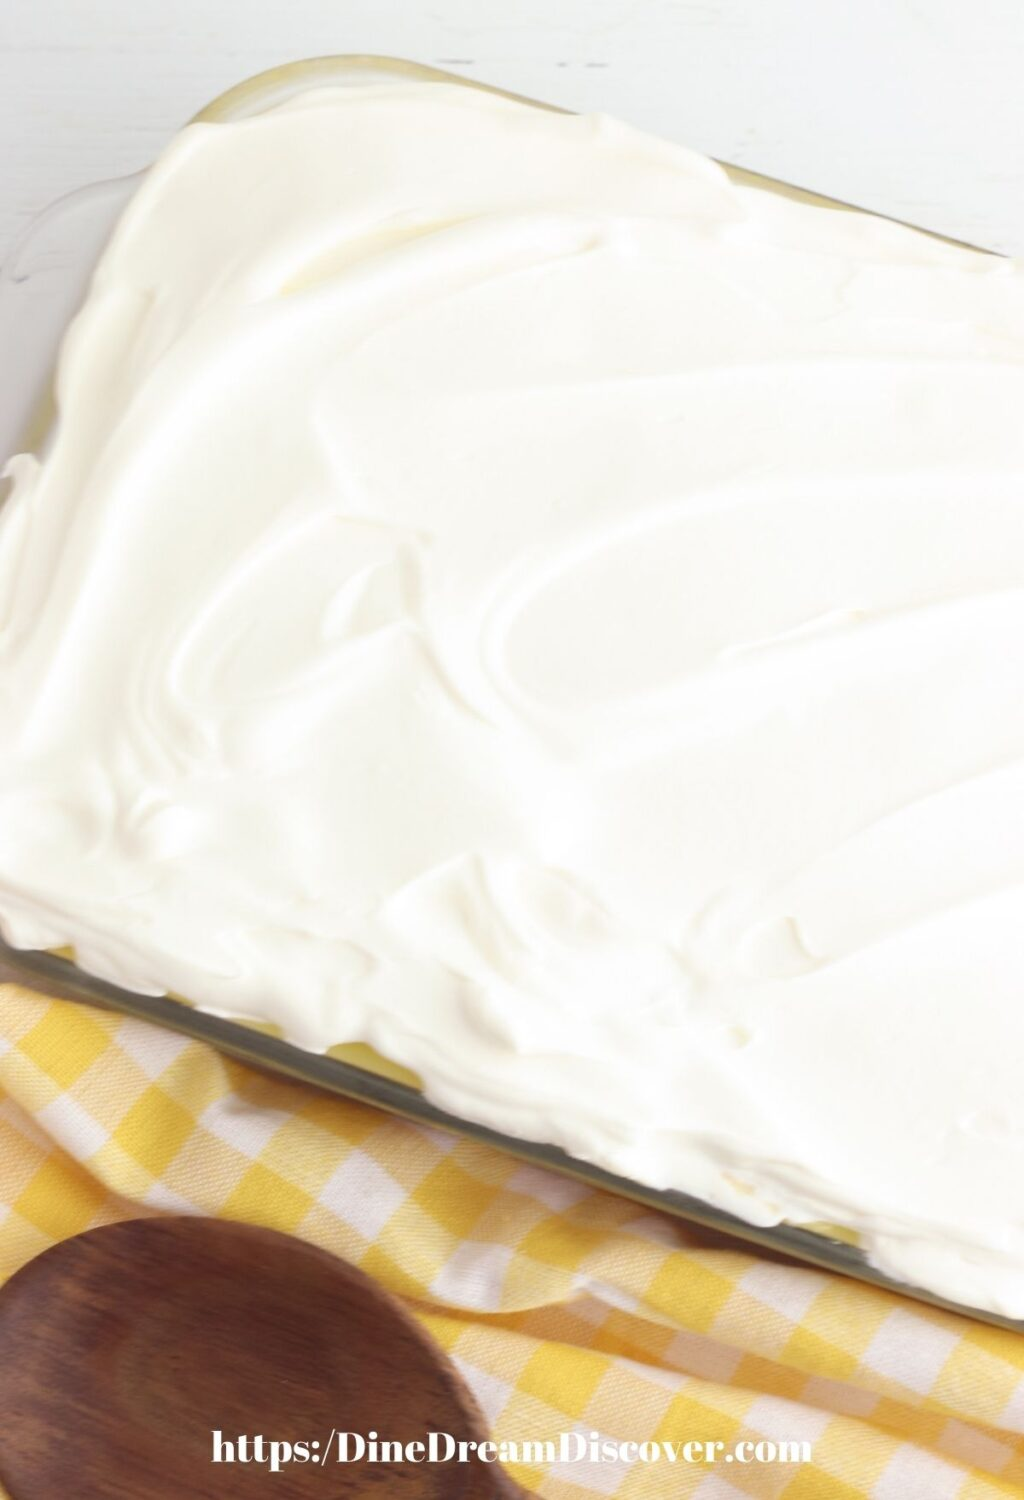 WHIPPED TOPPING CAKE